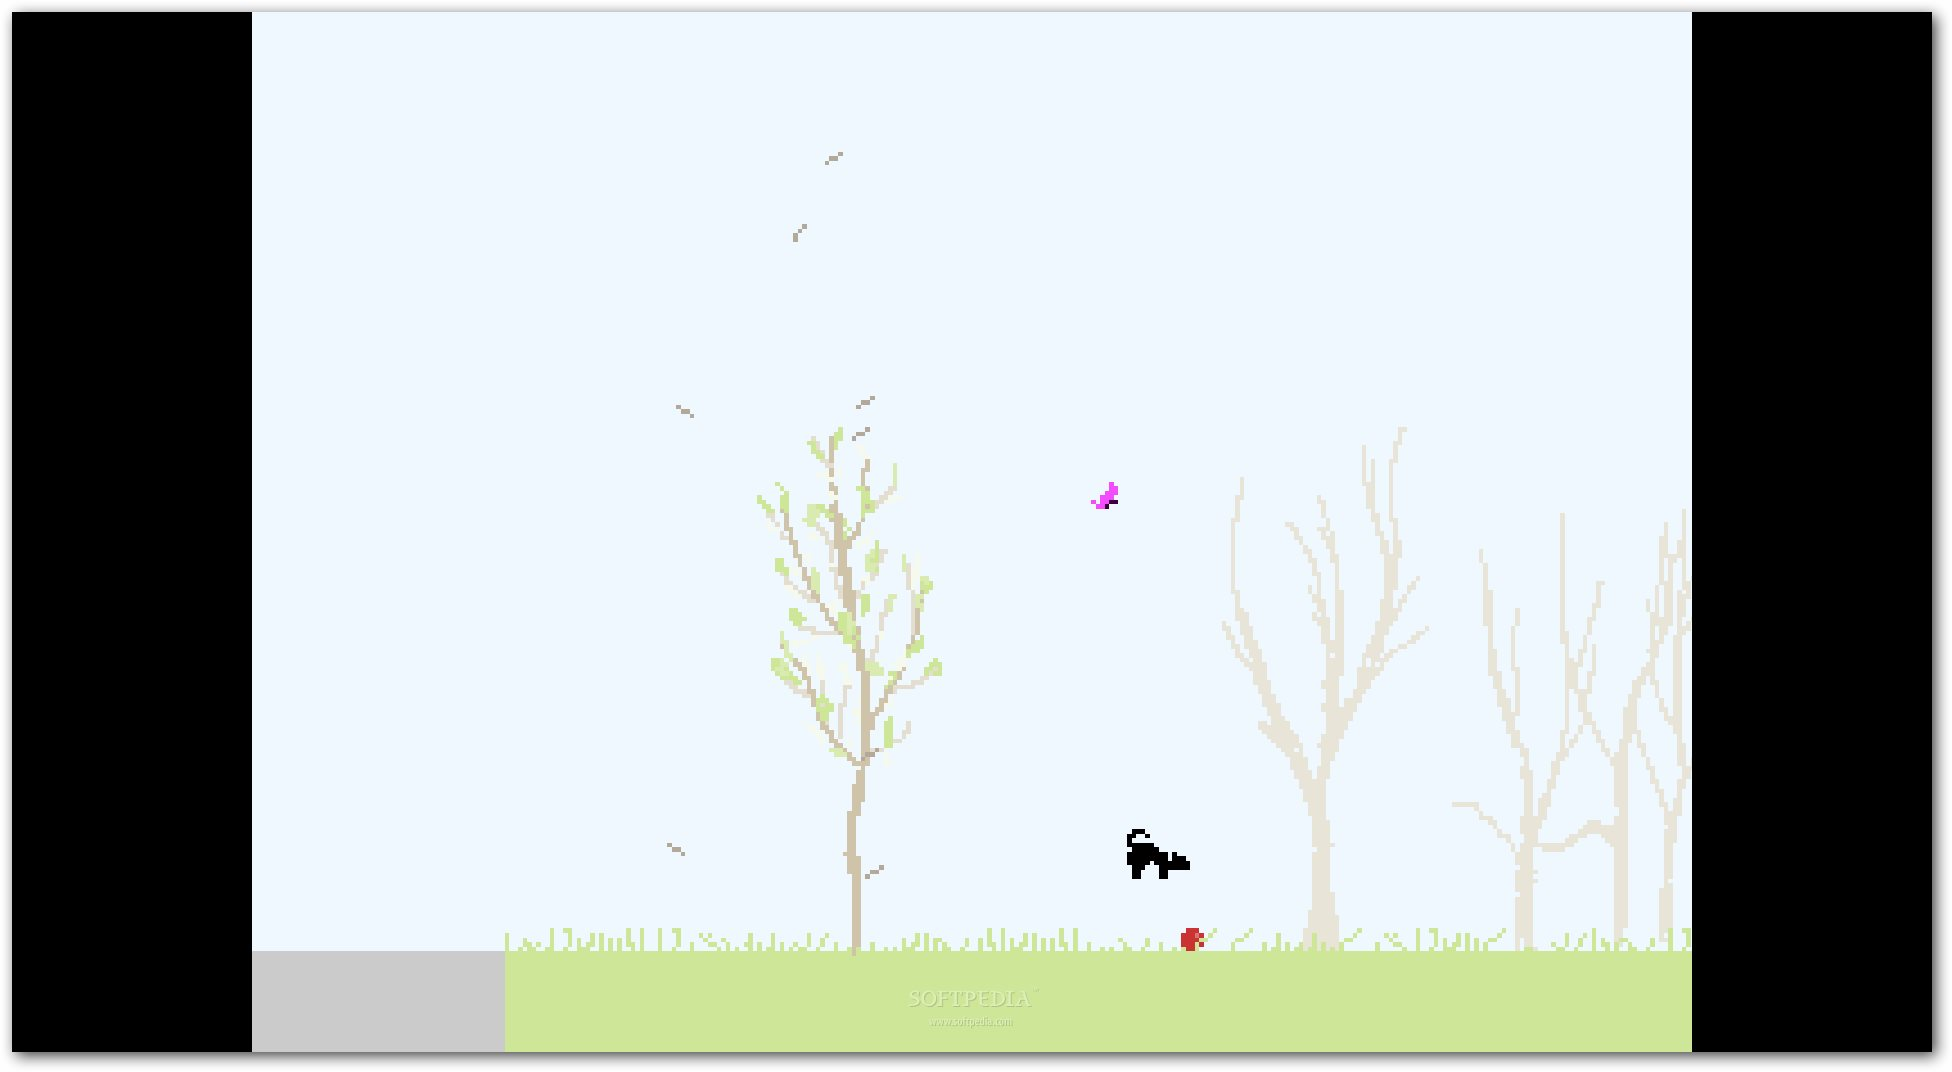 Stray Whisker screenshot 2